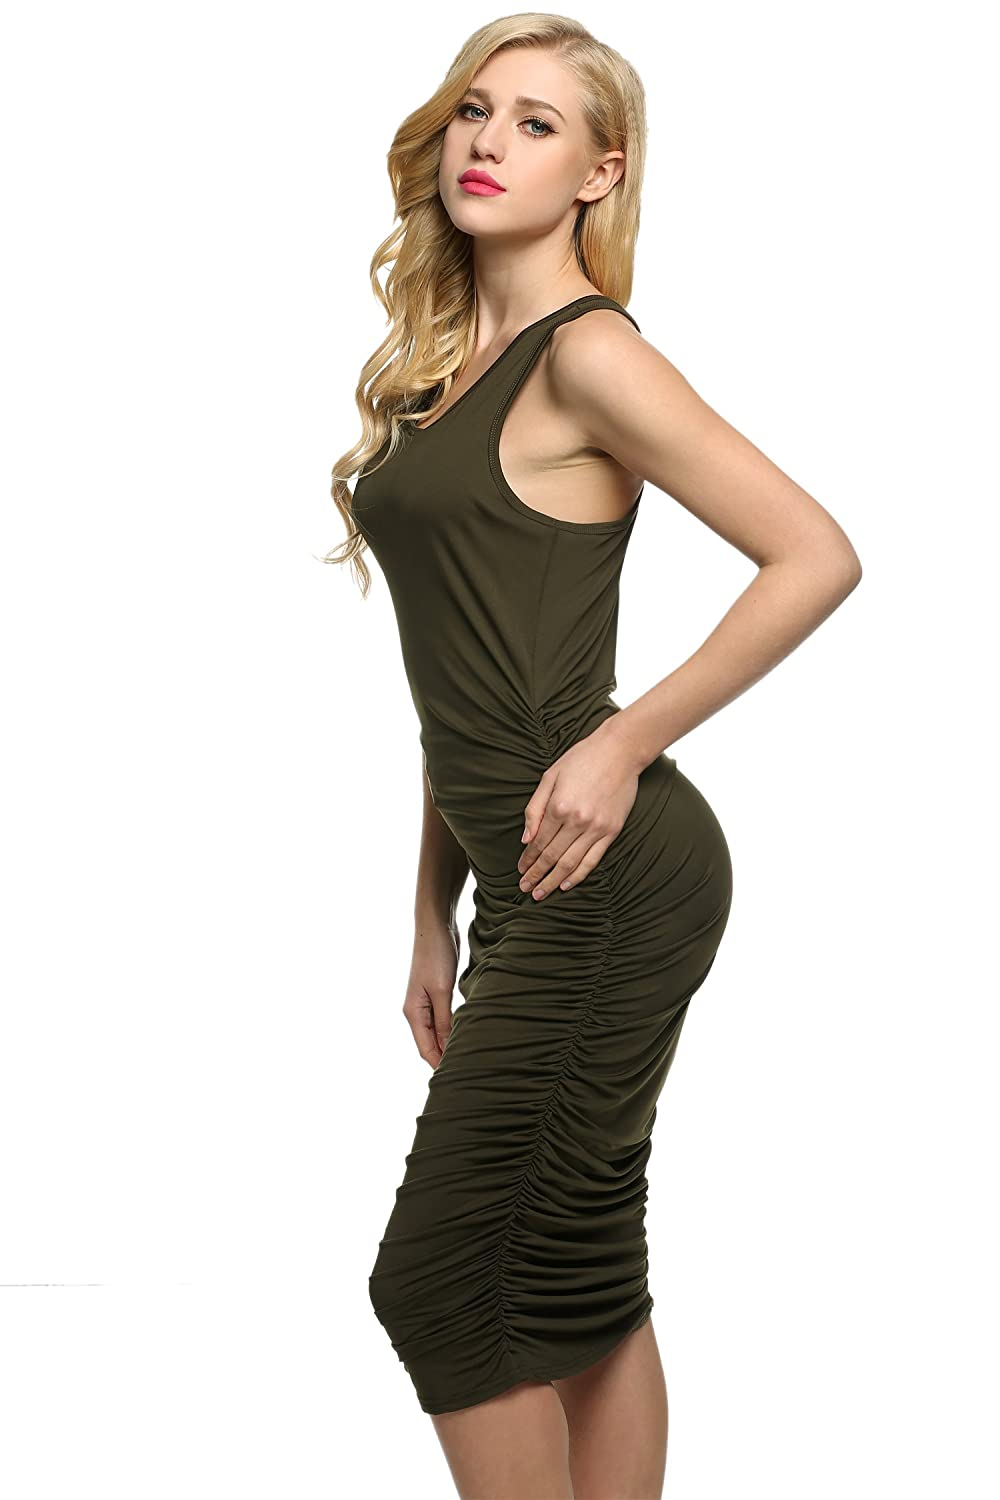 Caeasar Damen Stretch kleid ärmlos Wickelkleid Bodycon Etuikleid ...